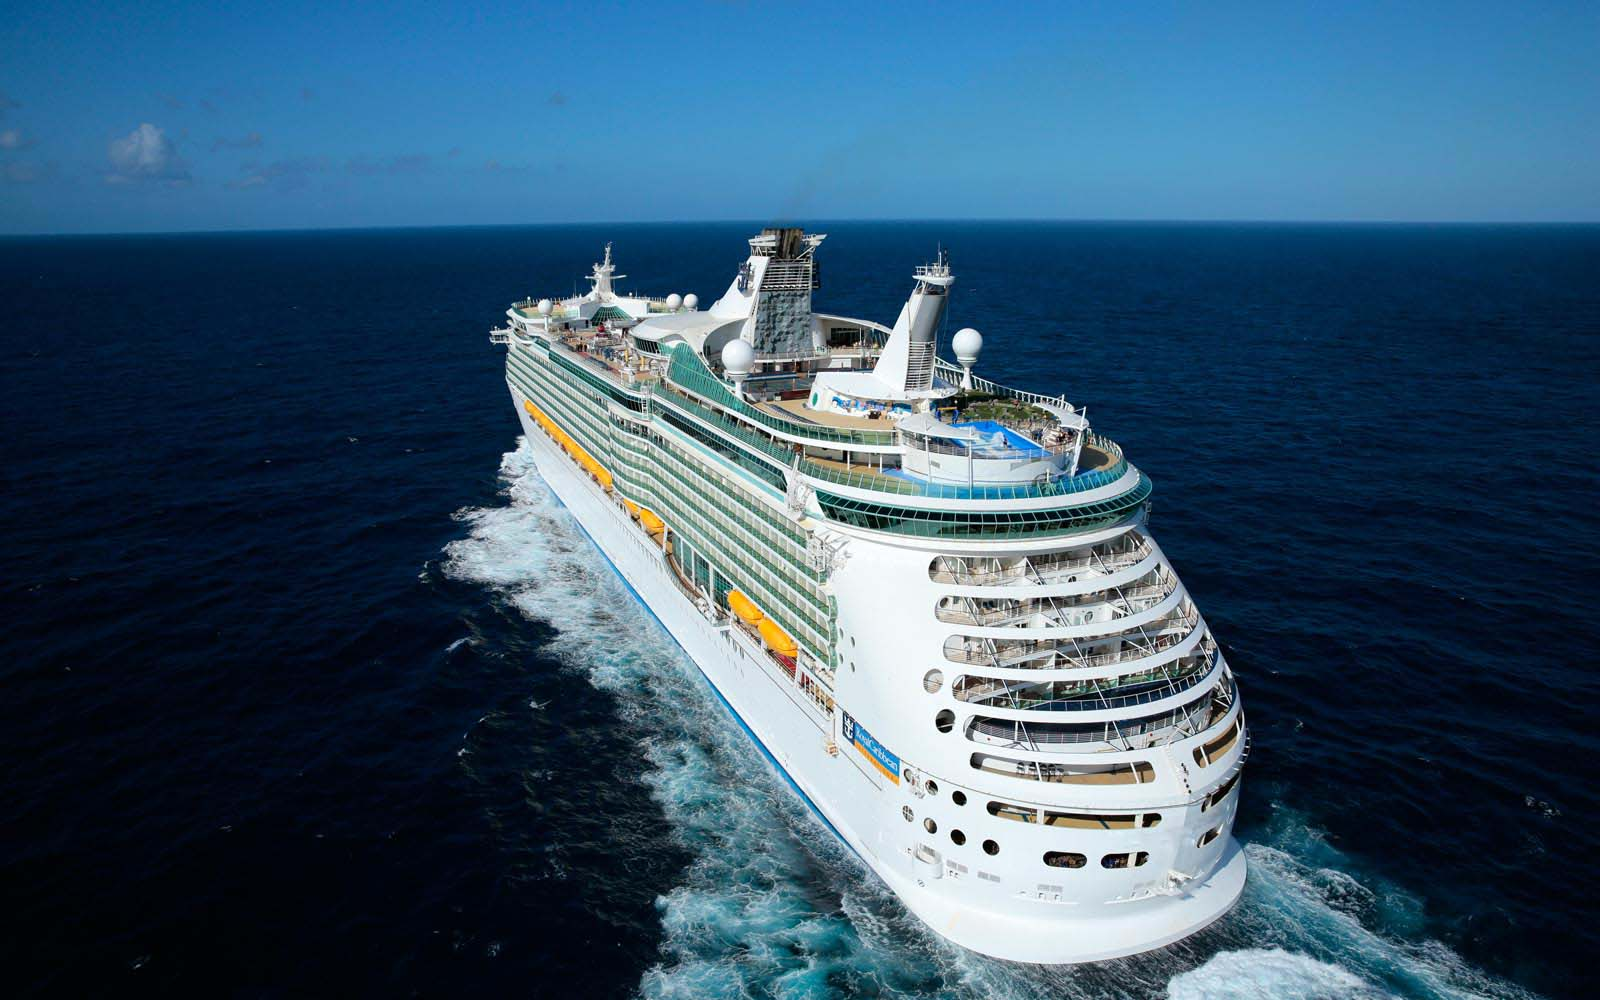 Royal Caribbean International's Explorer of the Seas Cruise Ship